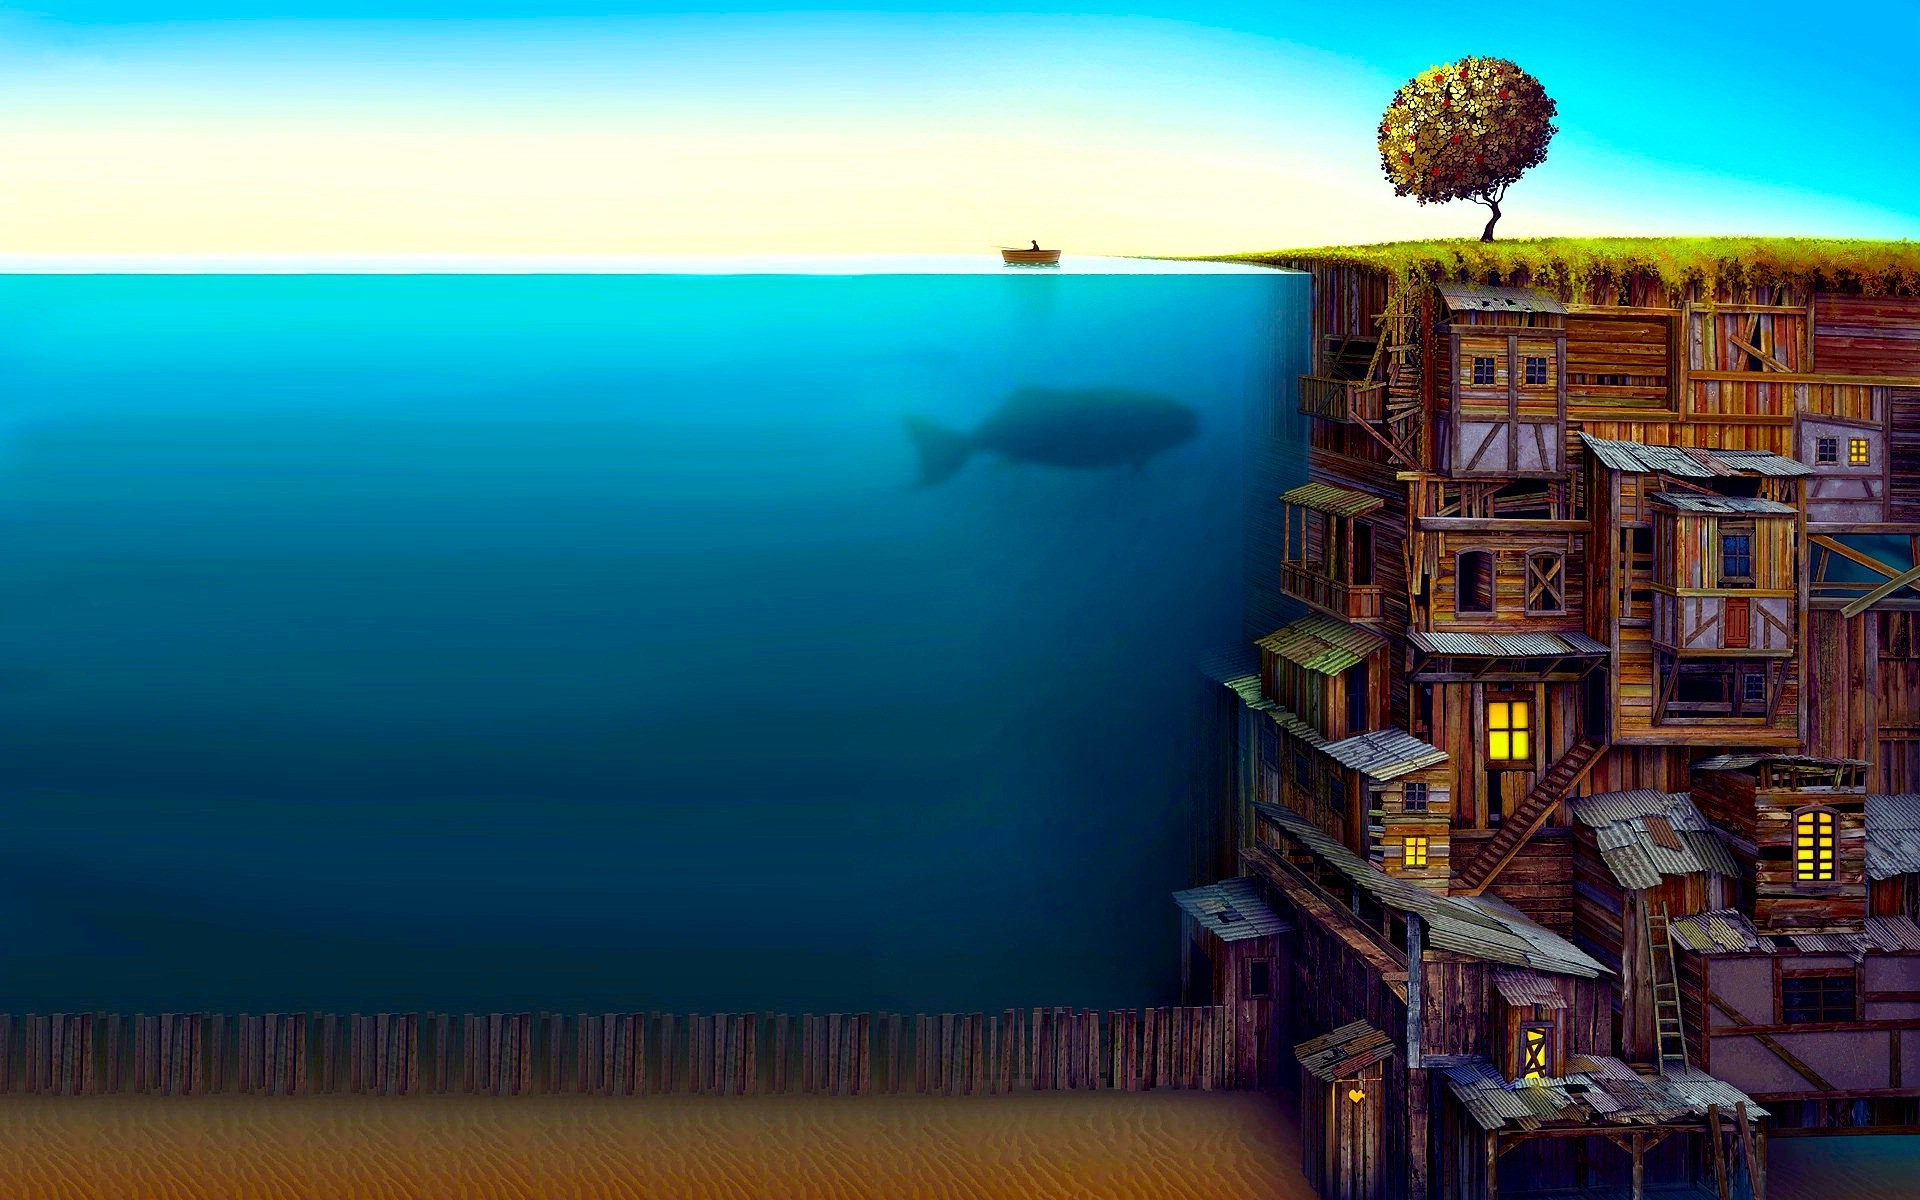 1920x1200 trees, Water, Abstract, Fish, Fantasy Art, Ladders, Split View, Filter,  Jacek Yerka, Owl City, Whale Wallpapers HD / Desktop and Mobile Backgrounds